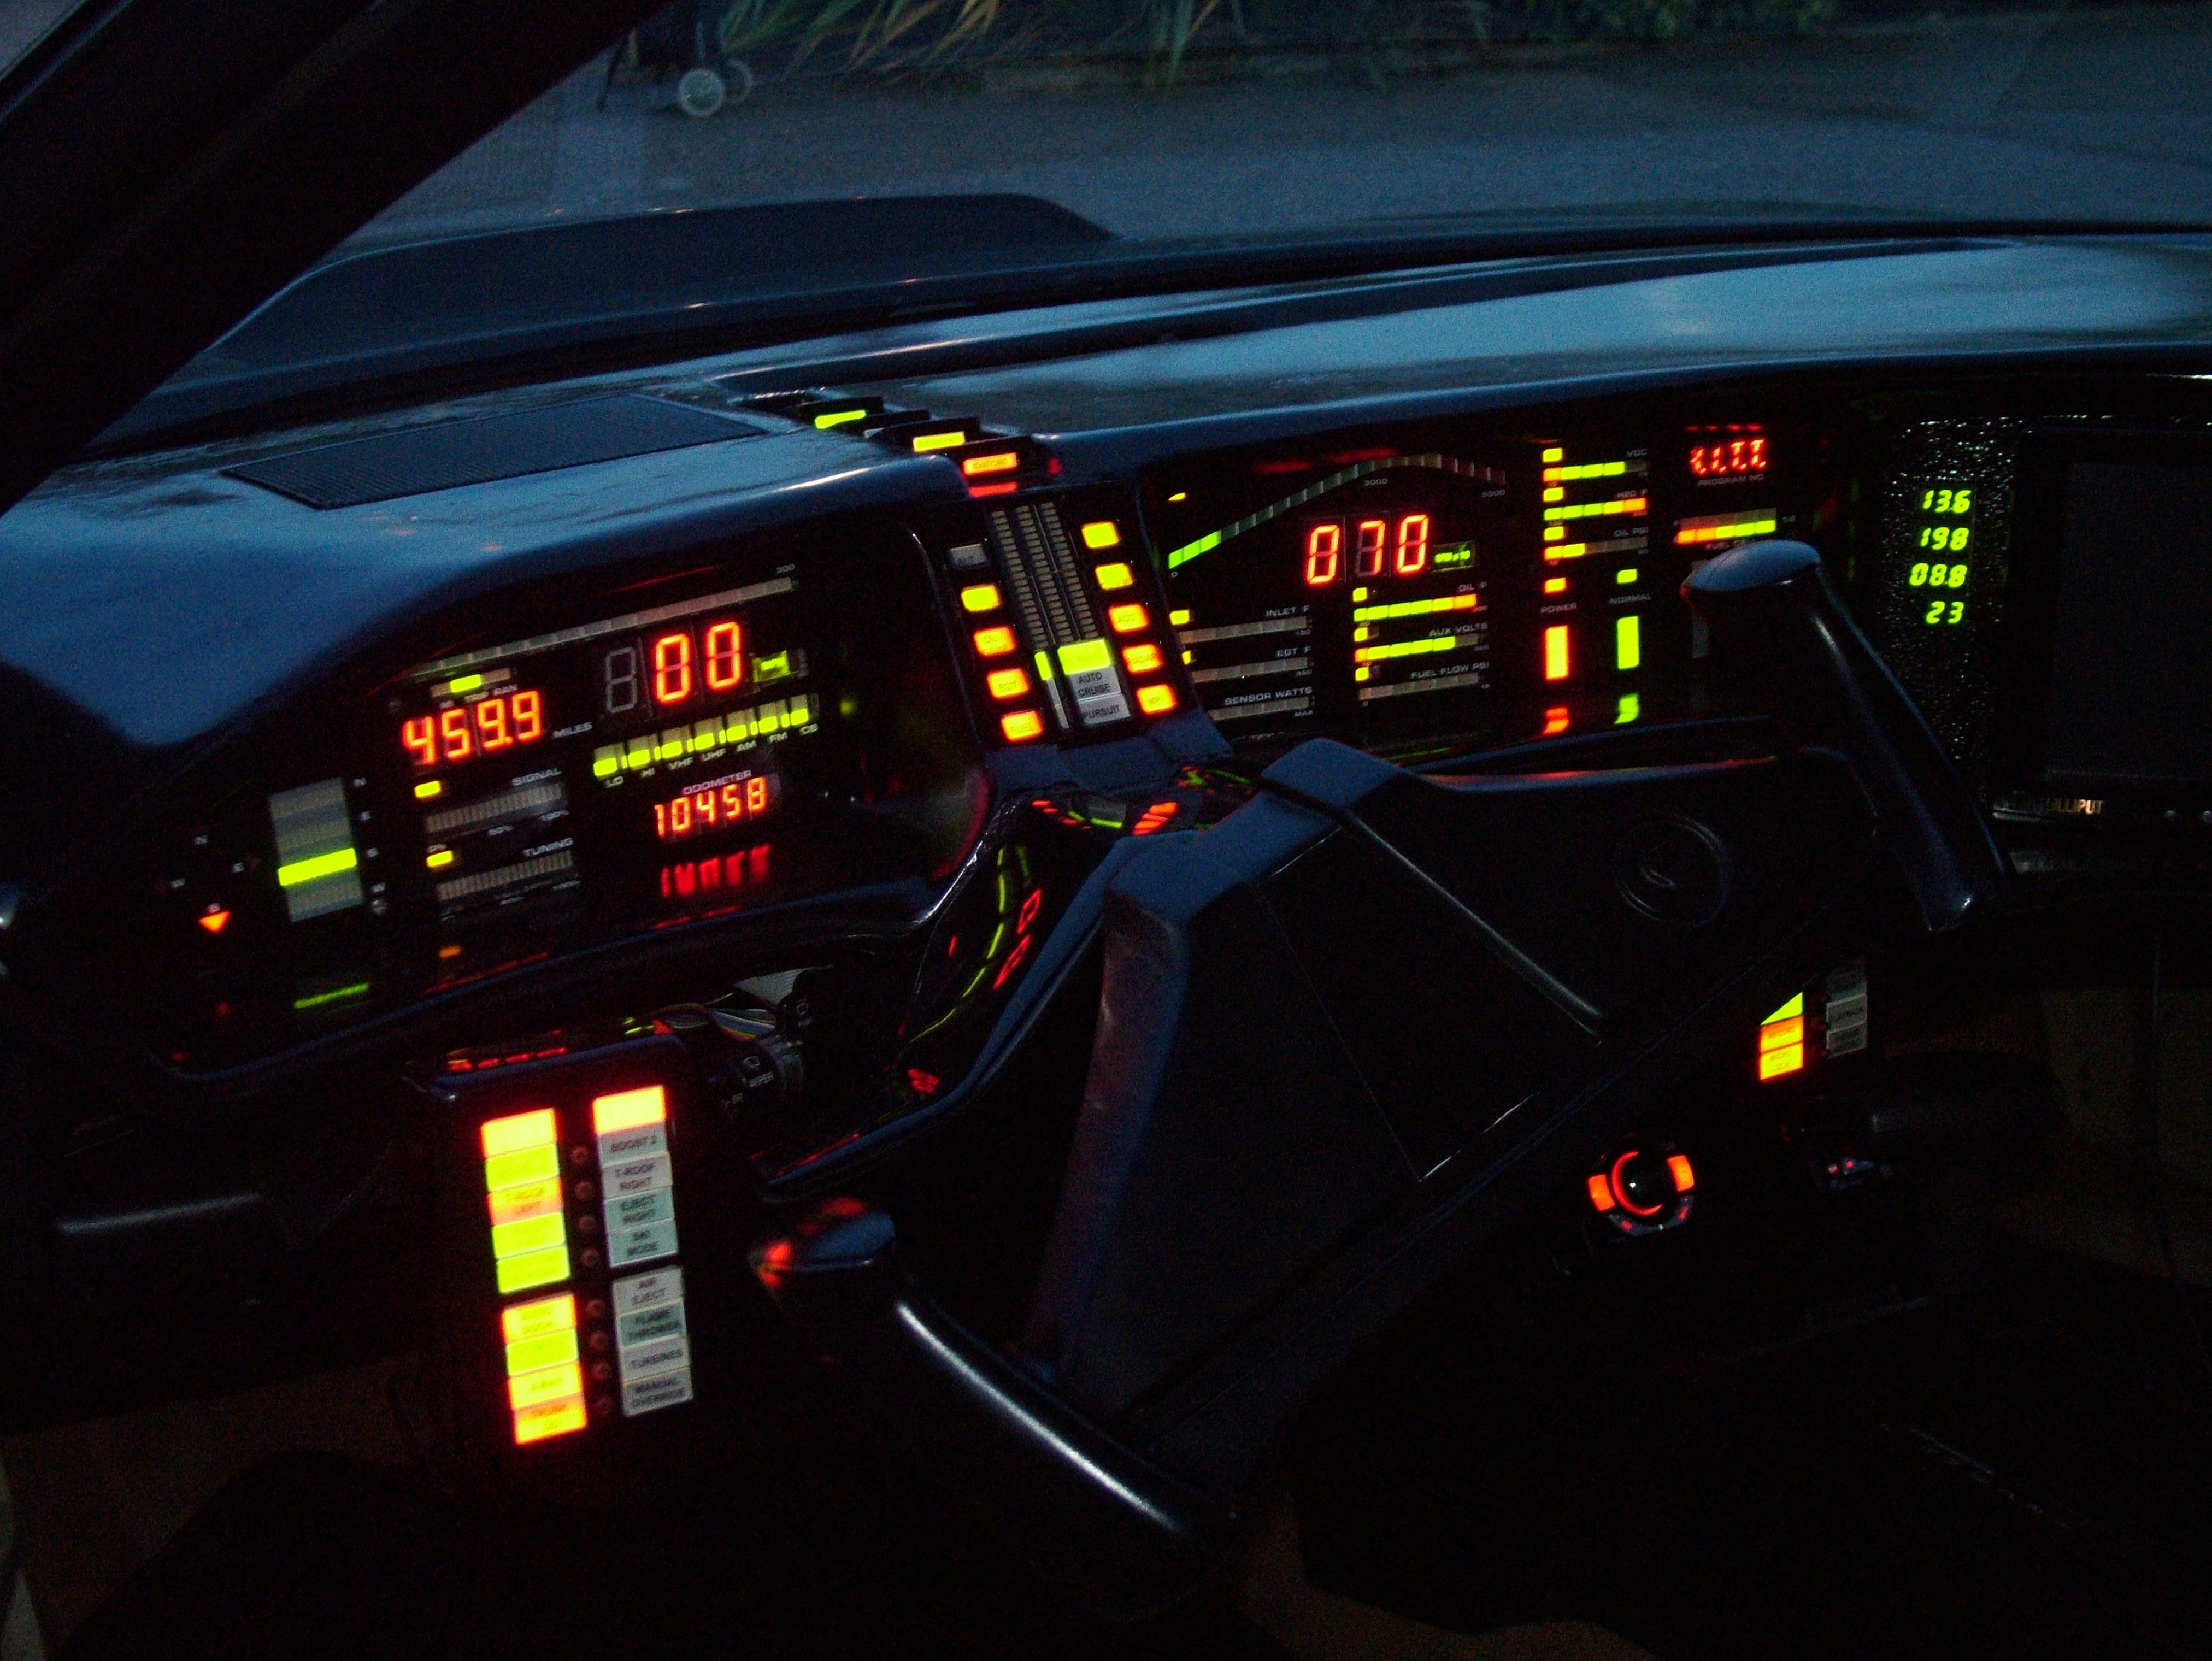 Knight Rider The Car Was So Cool Nostalgia Pinterest Firebird Instrument Cluster Circuit Board For Cars With Factory Gauges